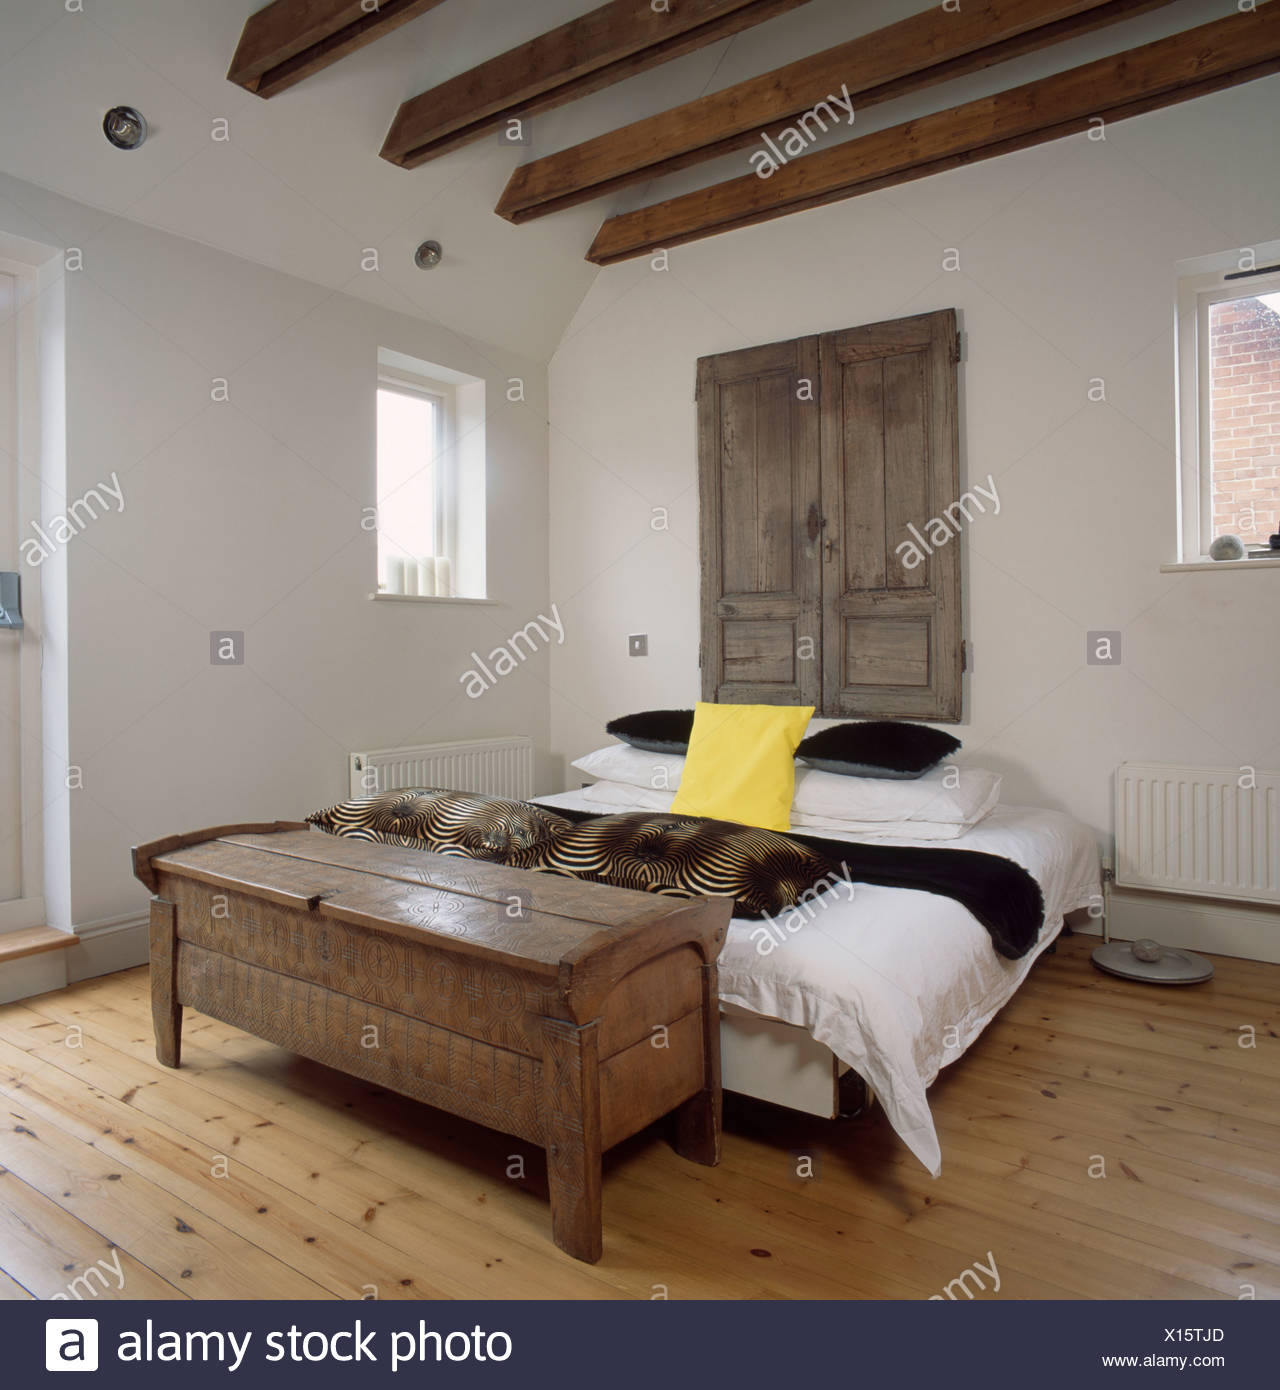 Old Wooden Cupboard Doors Above Bed In Simple White Bedroom With Antique  Wooden Chest And Wooden Flooring